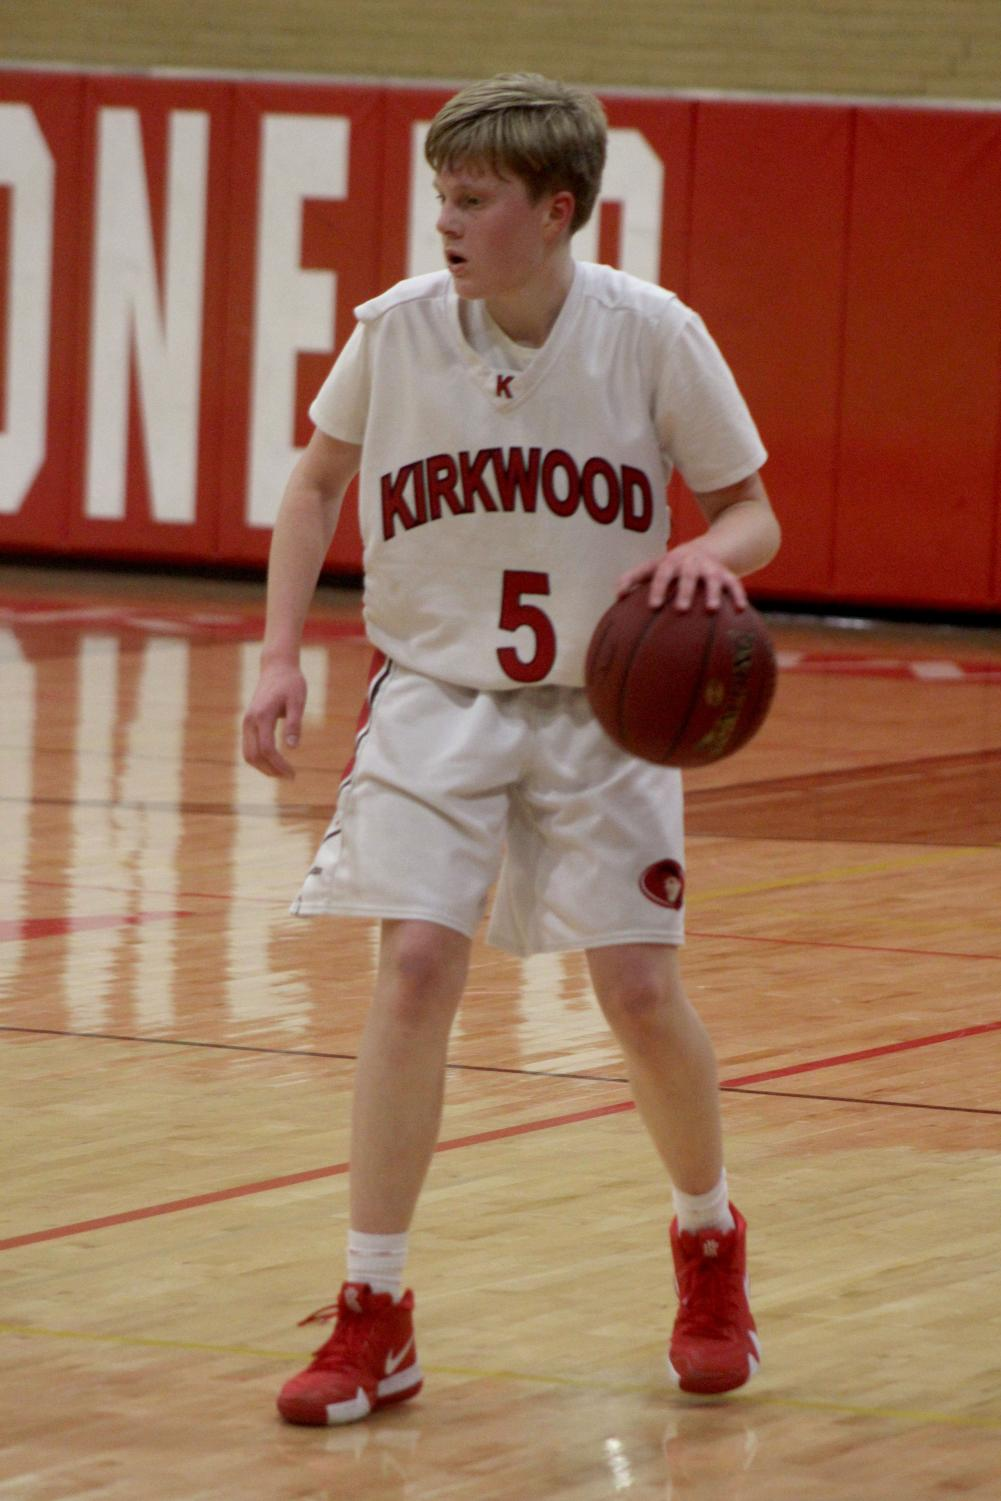 Josh+Bruns%2C+freshman%2C+waits+for+a+screen+from+a+teammate+Jan.+14+during+a+home+game+where+Kirkwood+won+49-32.